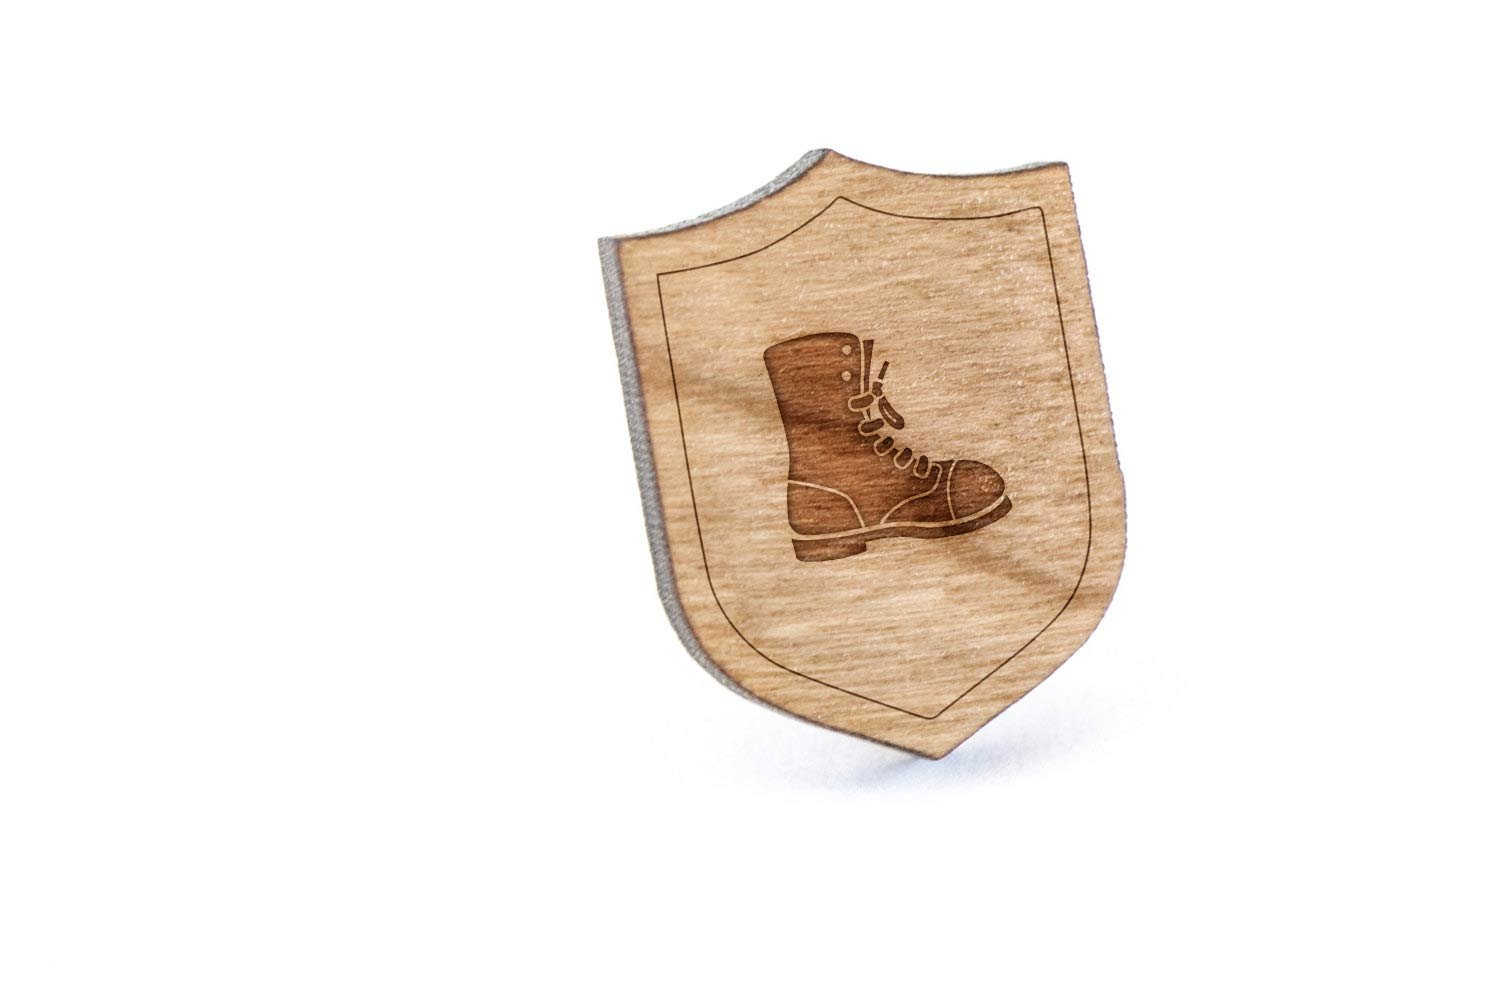 Combat Boot Lapel Pin, Wooden Pin And Tie Tack | Rustic And Minimalistic Groomsmen Gifts And Wedding Accessories